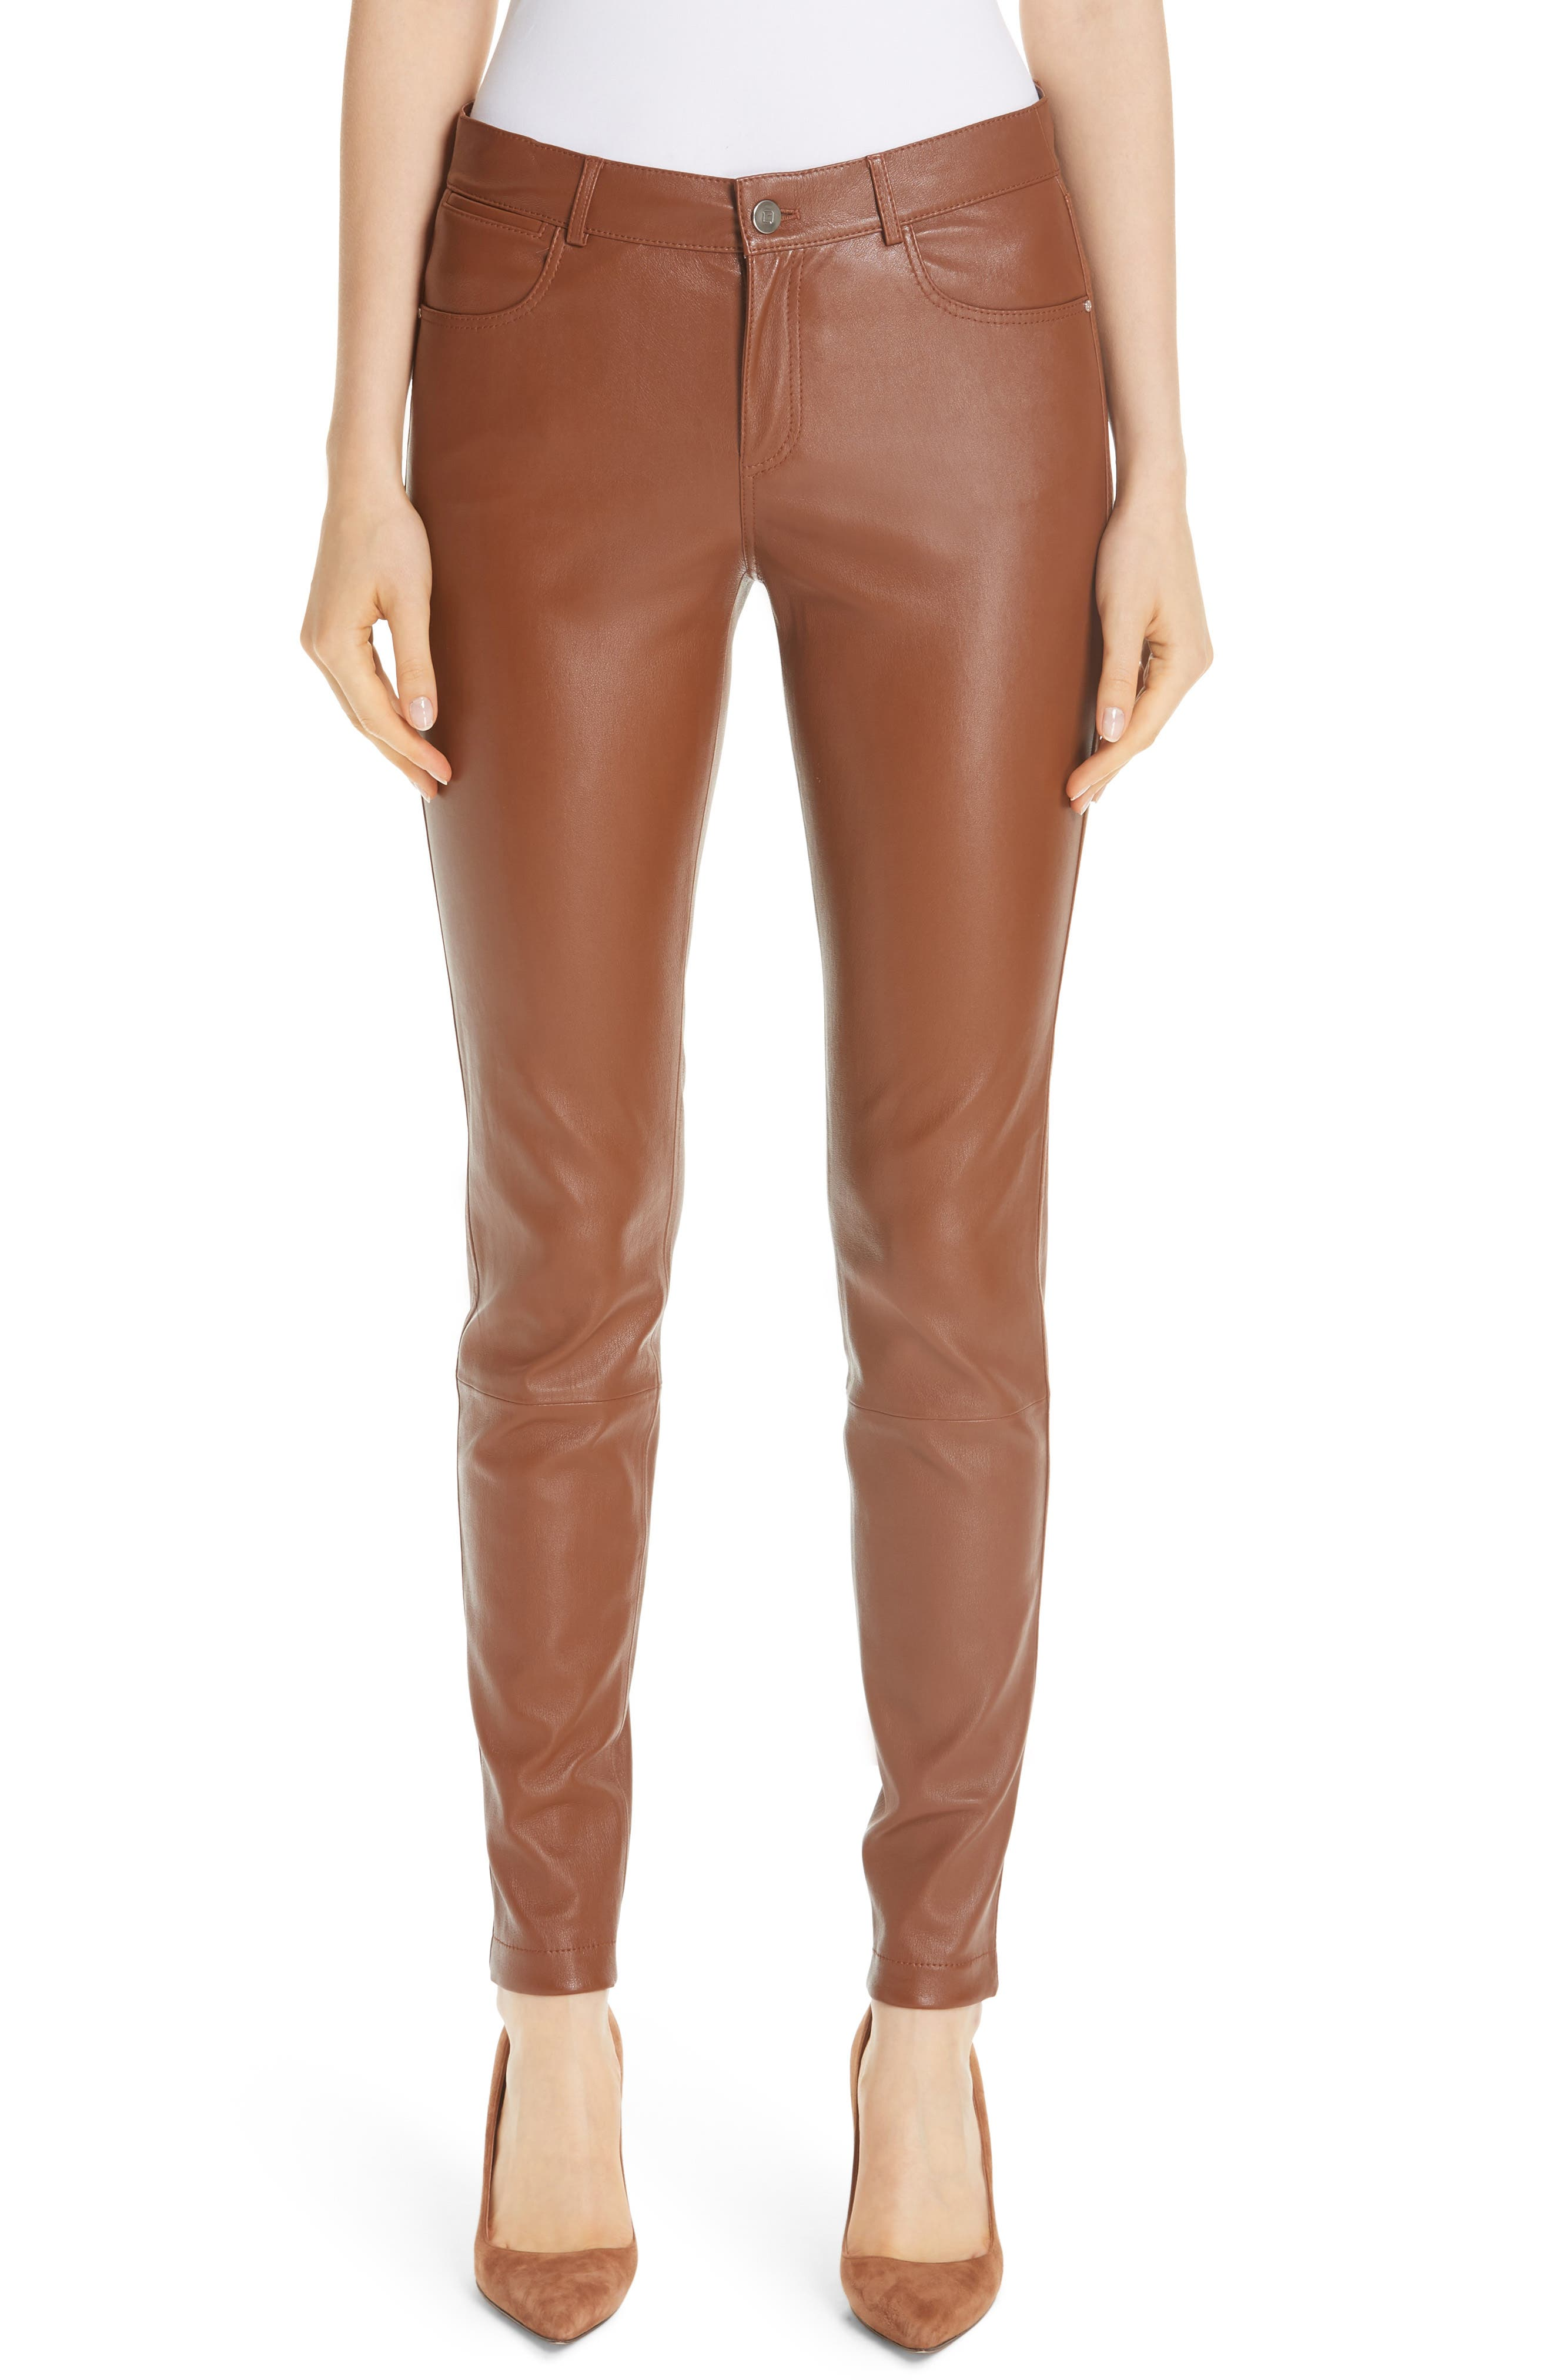 Mercer Nappa Leather Pants,                         Main,                         color, VICUNA